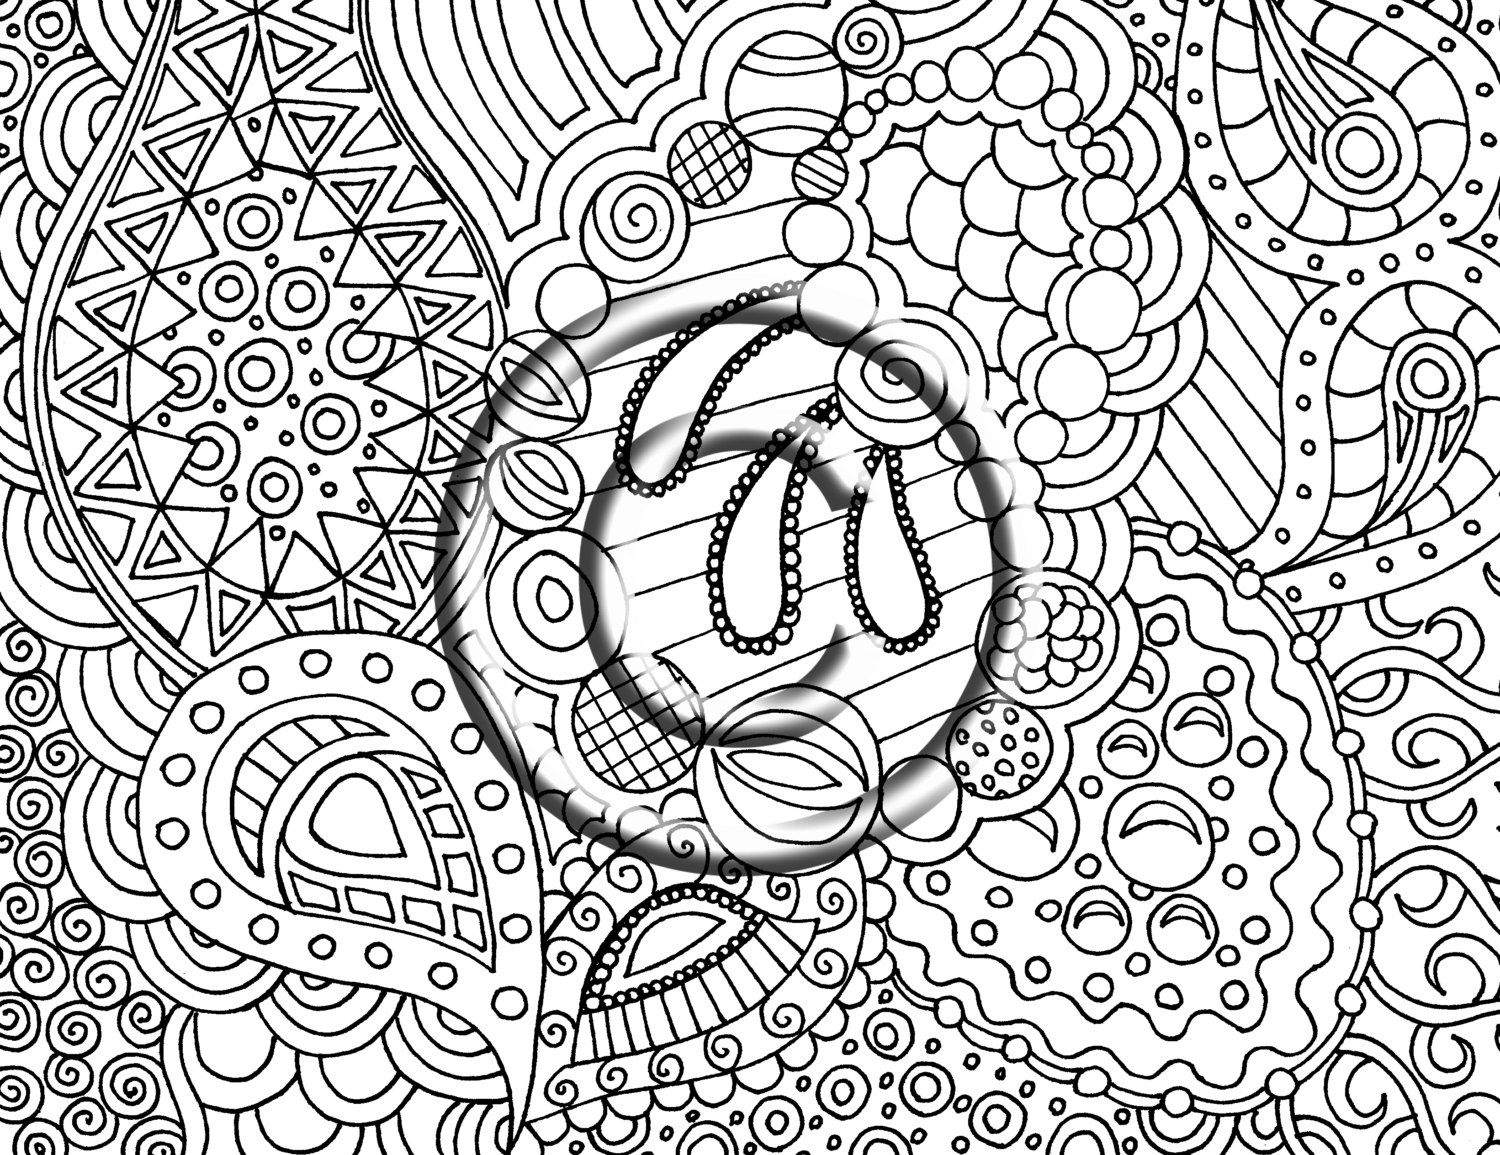 Coloring Pages Trippy For Print Coloring Pages Trippy